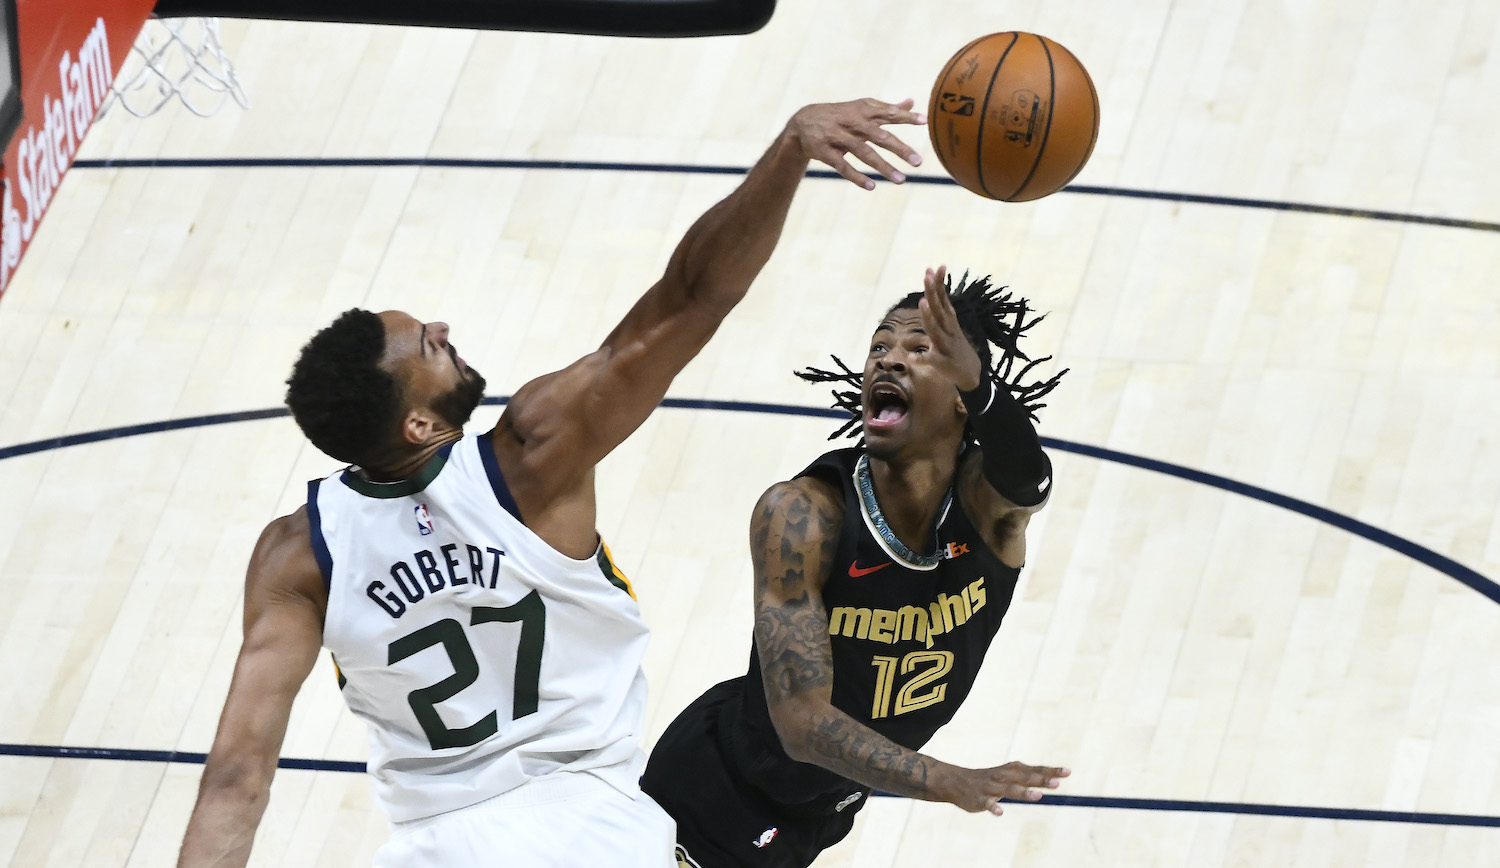 SALT LAKE CITY, UTAH - MAY 23: Rudy Gobert #27 of the Utah Jazz blocks Ja Morant #12 of the Memphis Grizzlies in Game One of the Western Conference first-round playoff series at Vivint Smart Home Arena on May 23, 2021 in Salt Lake City, Utah. NOTE TO USER: User expressly acknowledges and agrees that, by downloading and/or using this photograph, user is consenting to the terms and conditions of the Getty Images License Agreement. (Photo by Alex Goodlett/Getty Images)